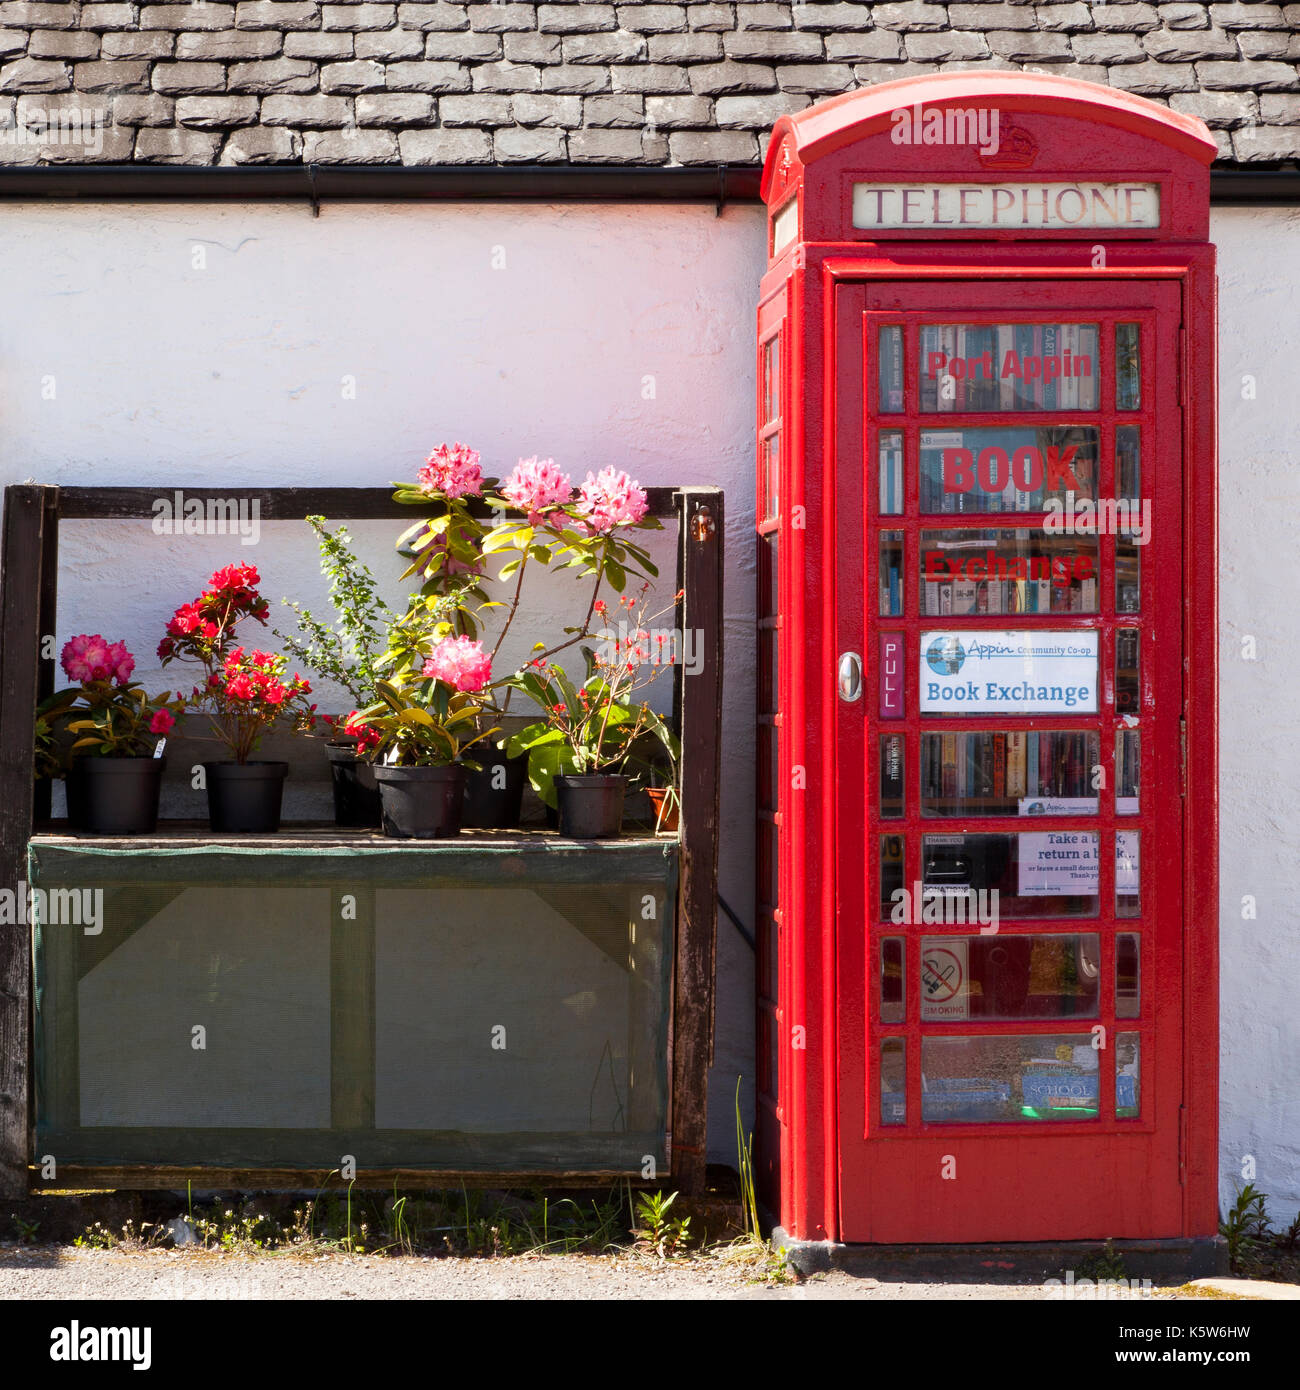 Port Appin Book Exchange in an old Telephone box, Scotland, UK - Stock Image